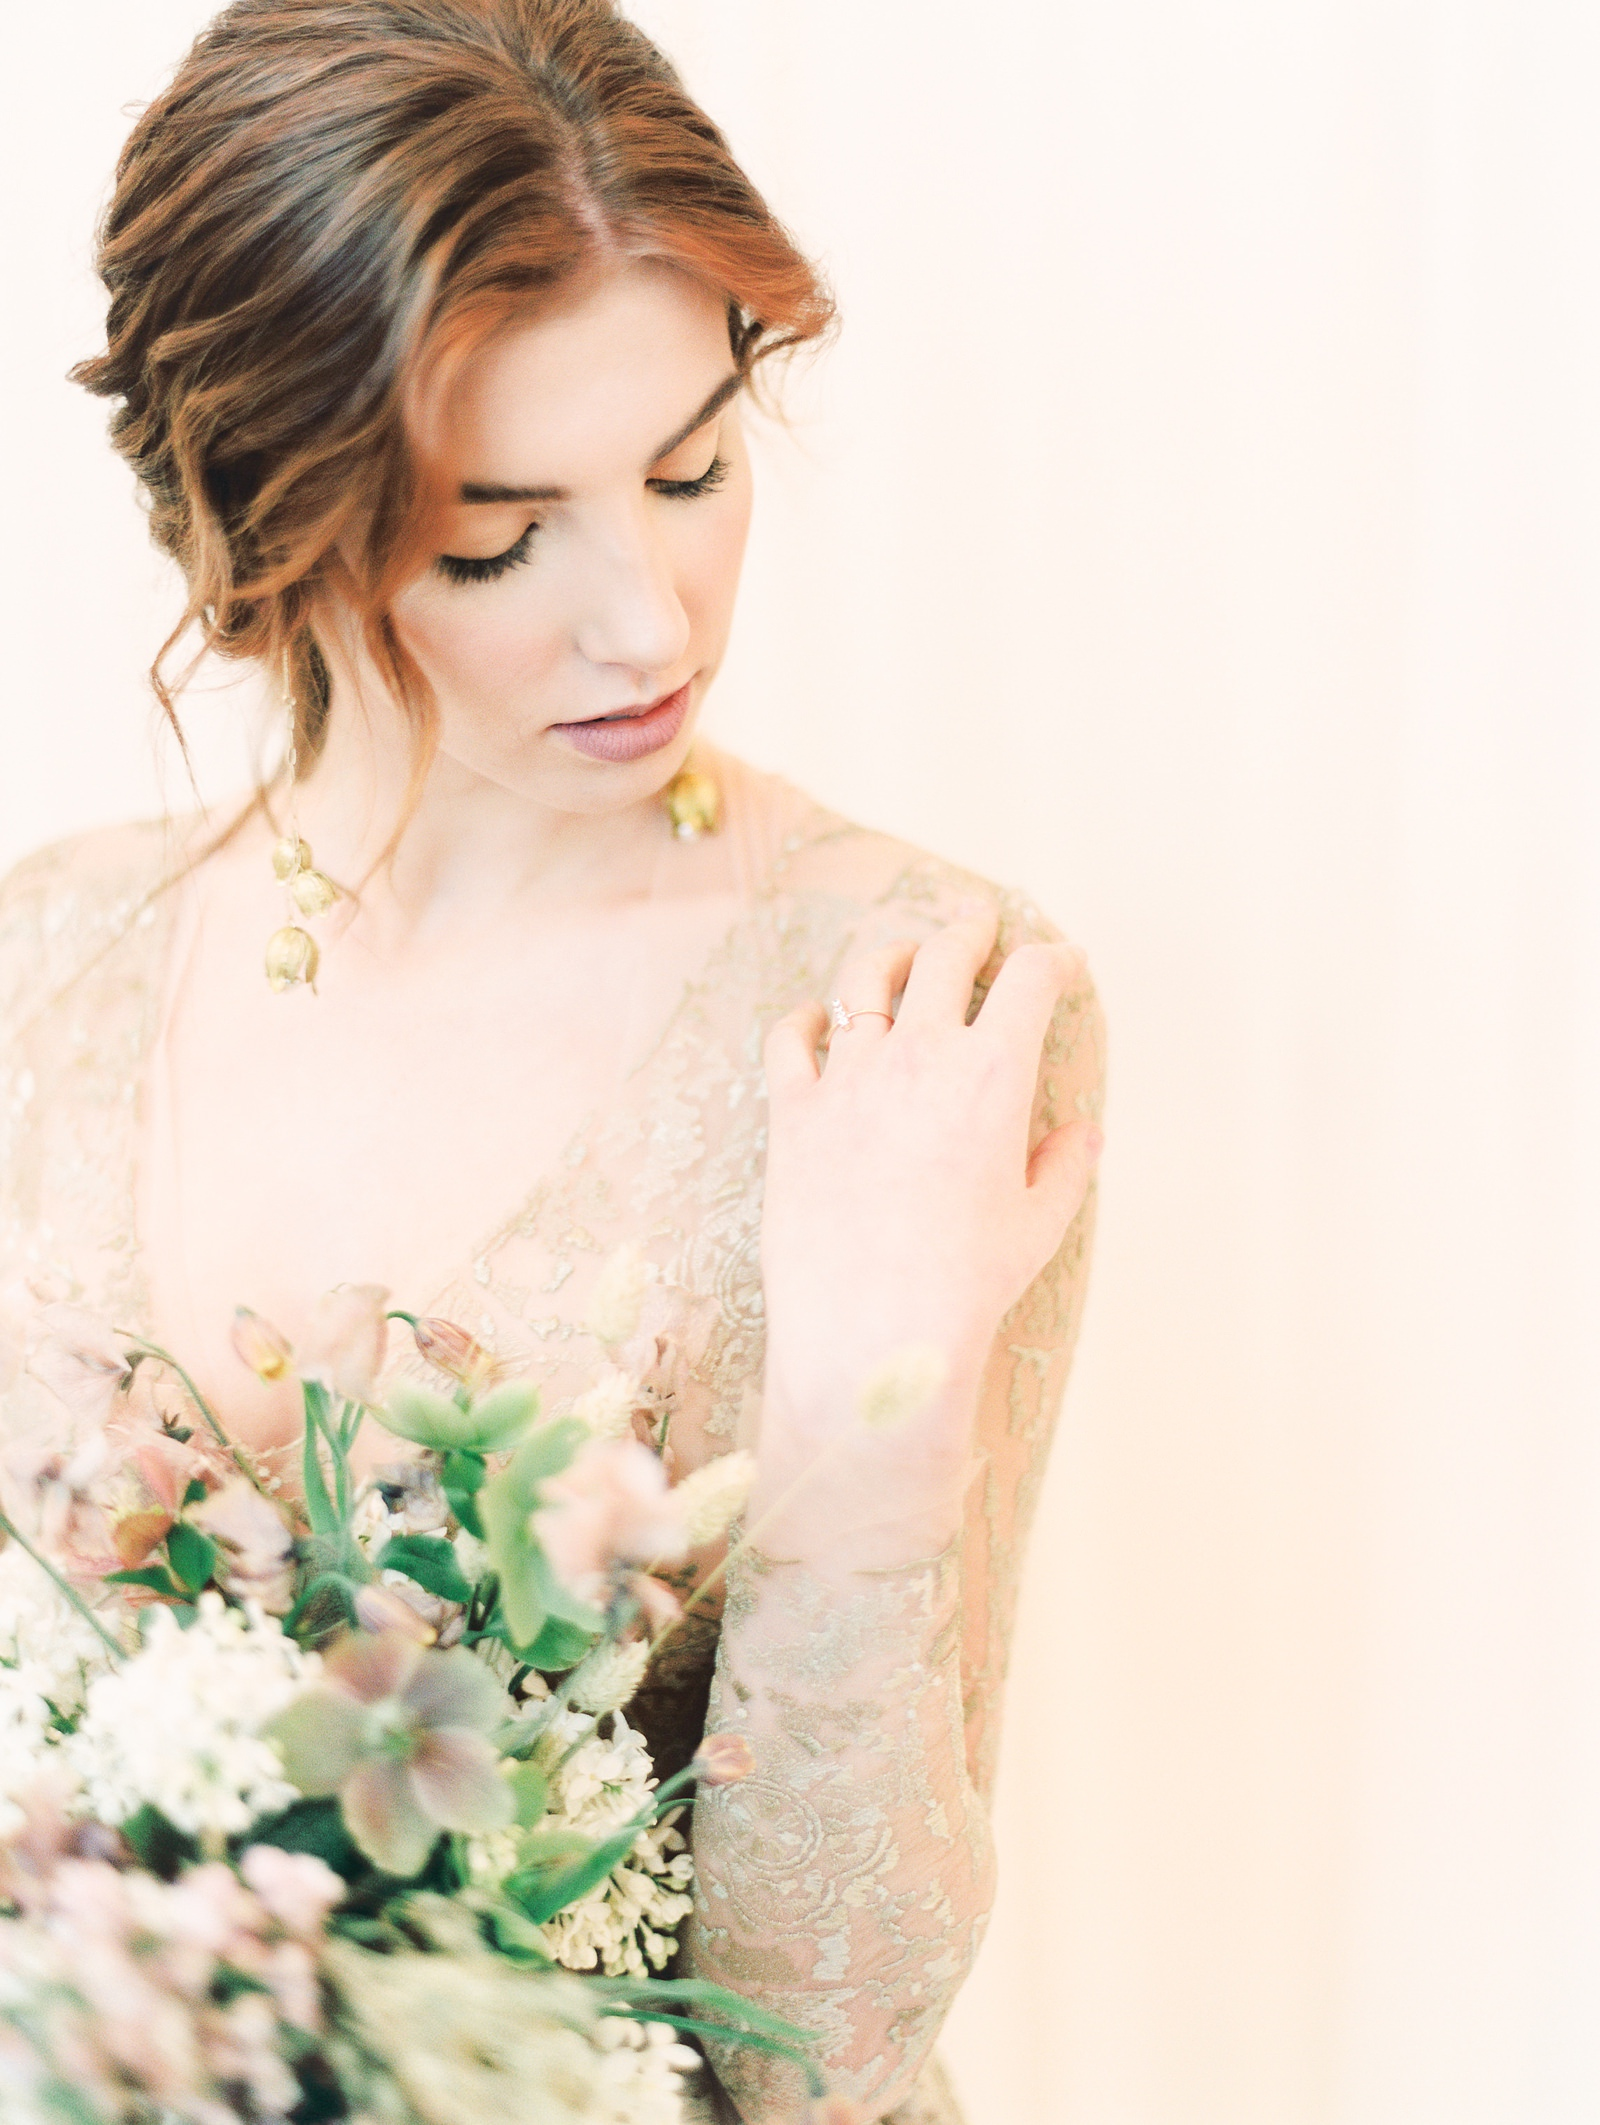 Heber Valley Natural Organic Wedding Inspiration at River Bottoms Ranch, Utah wedding photography, bride with long sleeve sheer lace wedding dress, loose romantic updo hairstyle